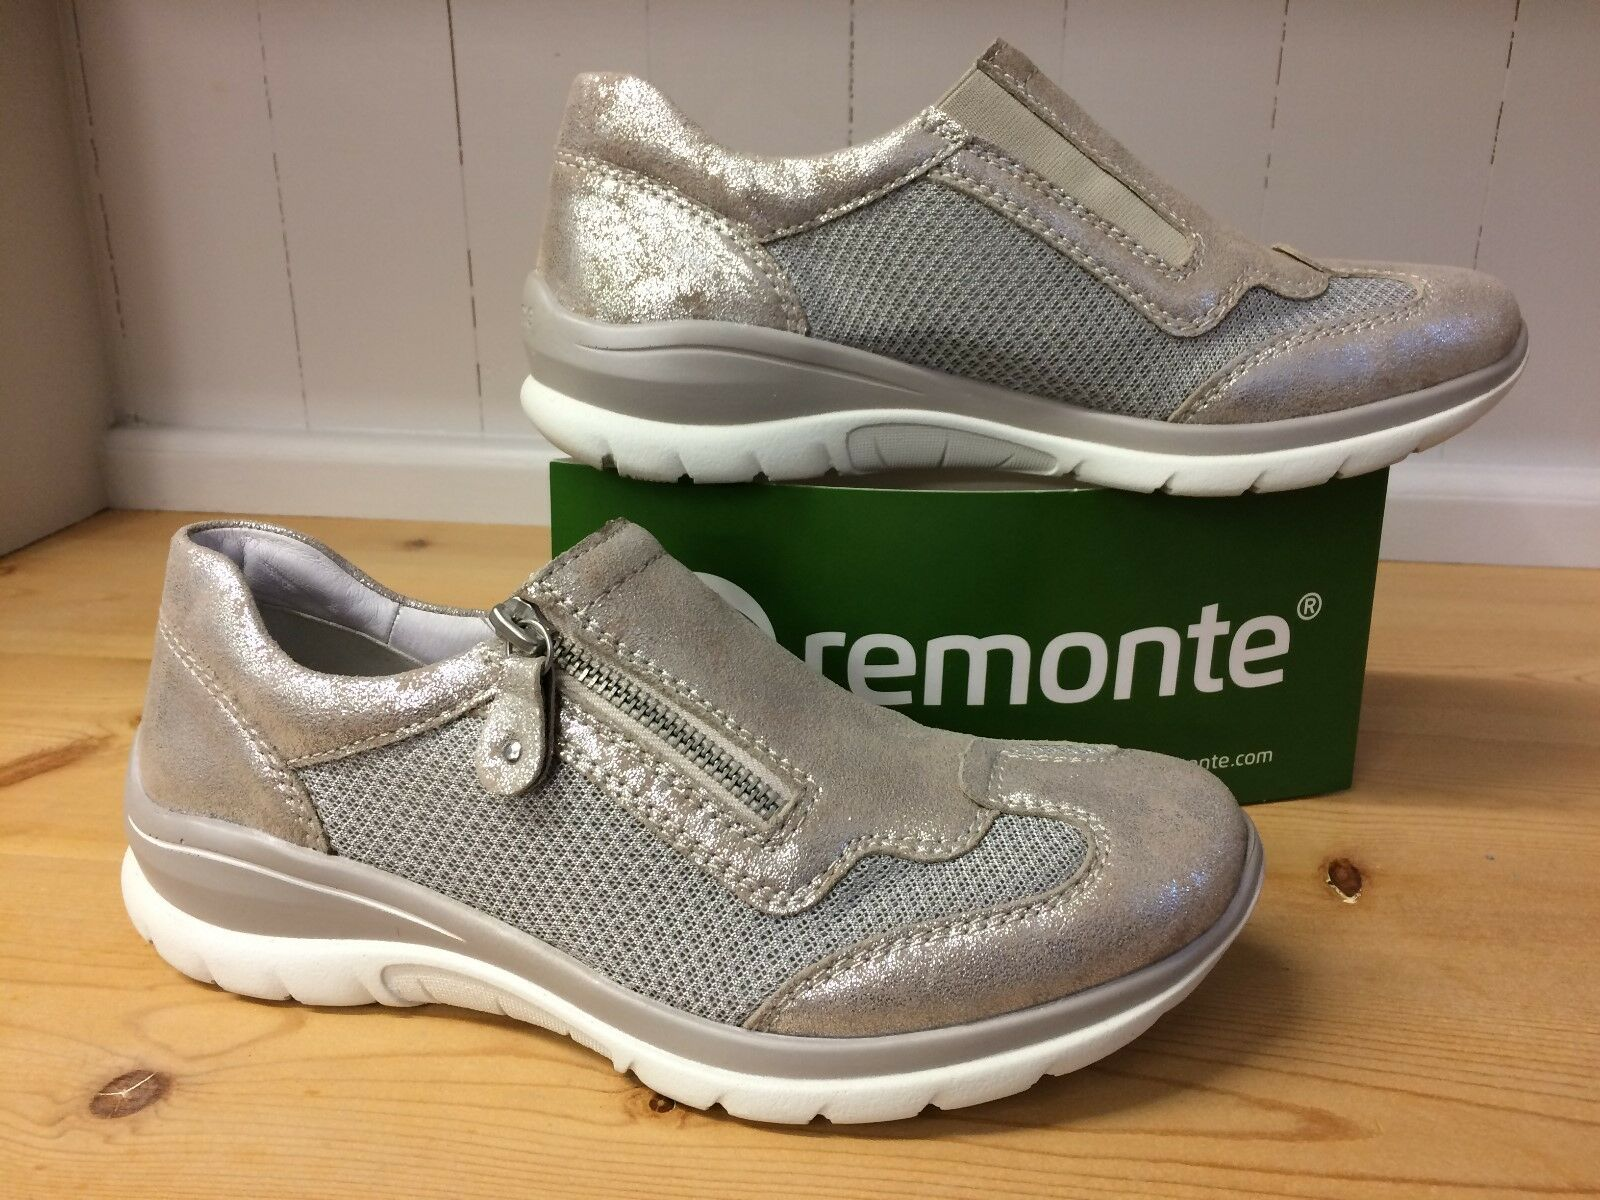 REMONTE  grau METALLIC ZIP TRAINERS TRAINERS TRAINERS 41 7.5 schuhe Leatherl R5305 rotUCED PRICE afae8c